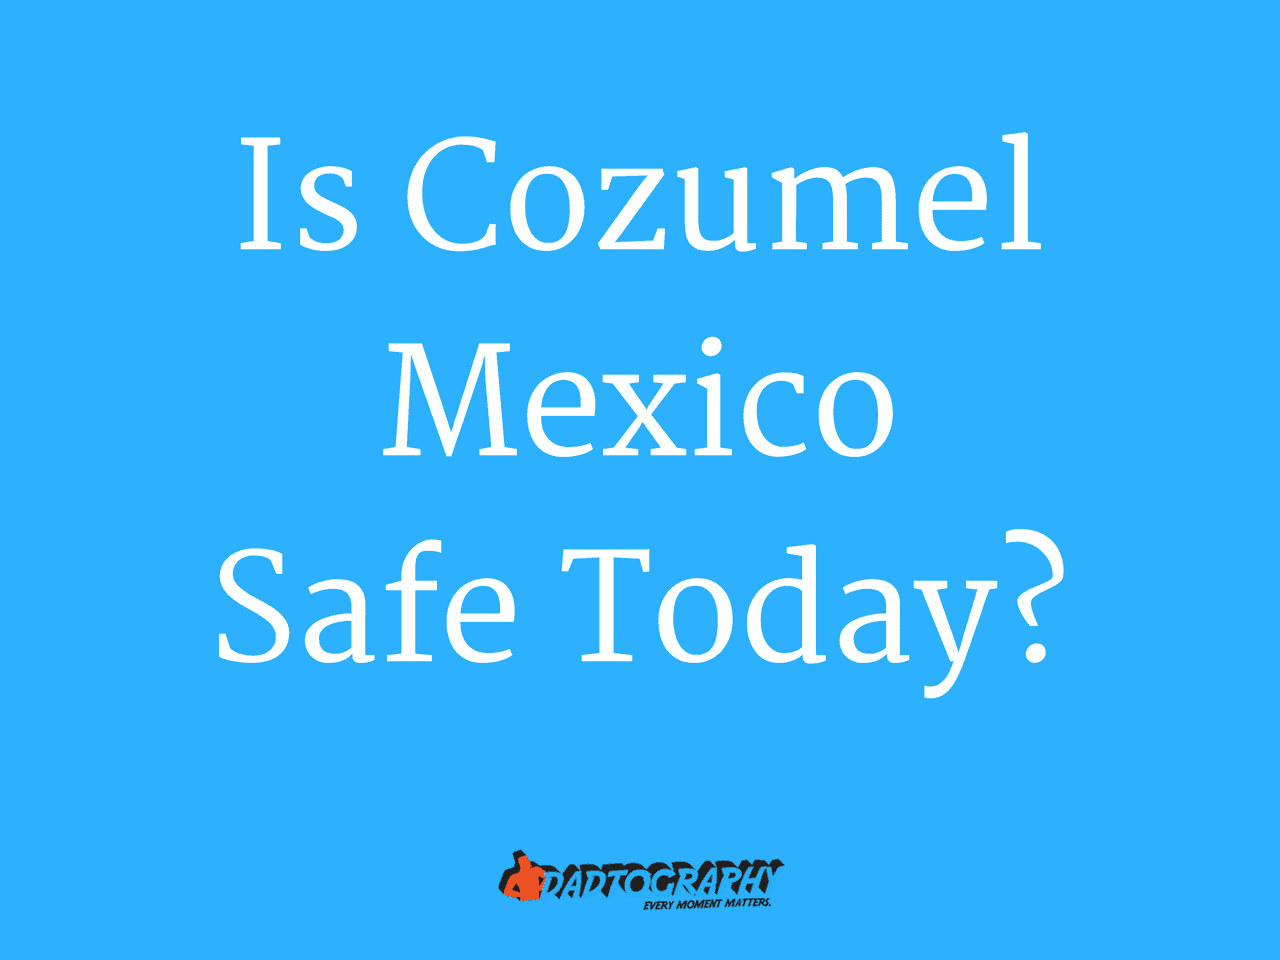 Is Cozumel Mexico Safe Today - Dadtography